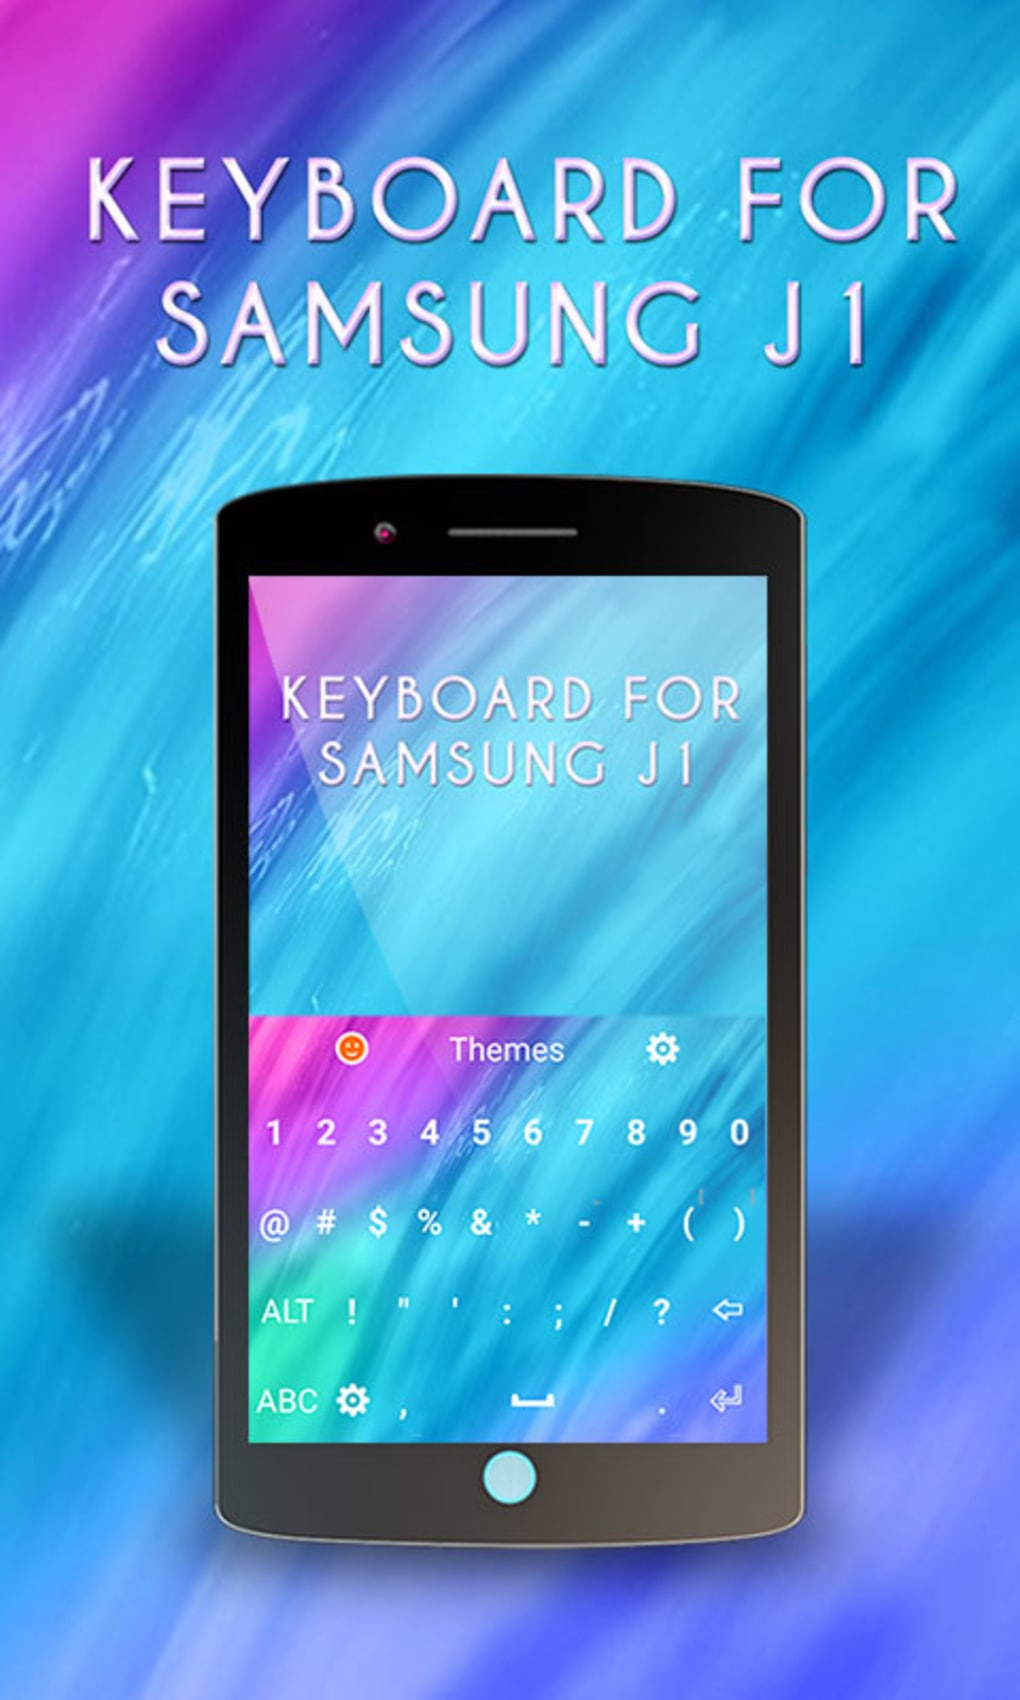 Keyboard for Samsung J1 for Android - Download